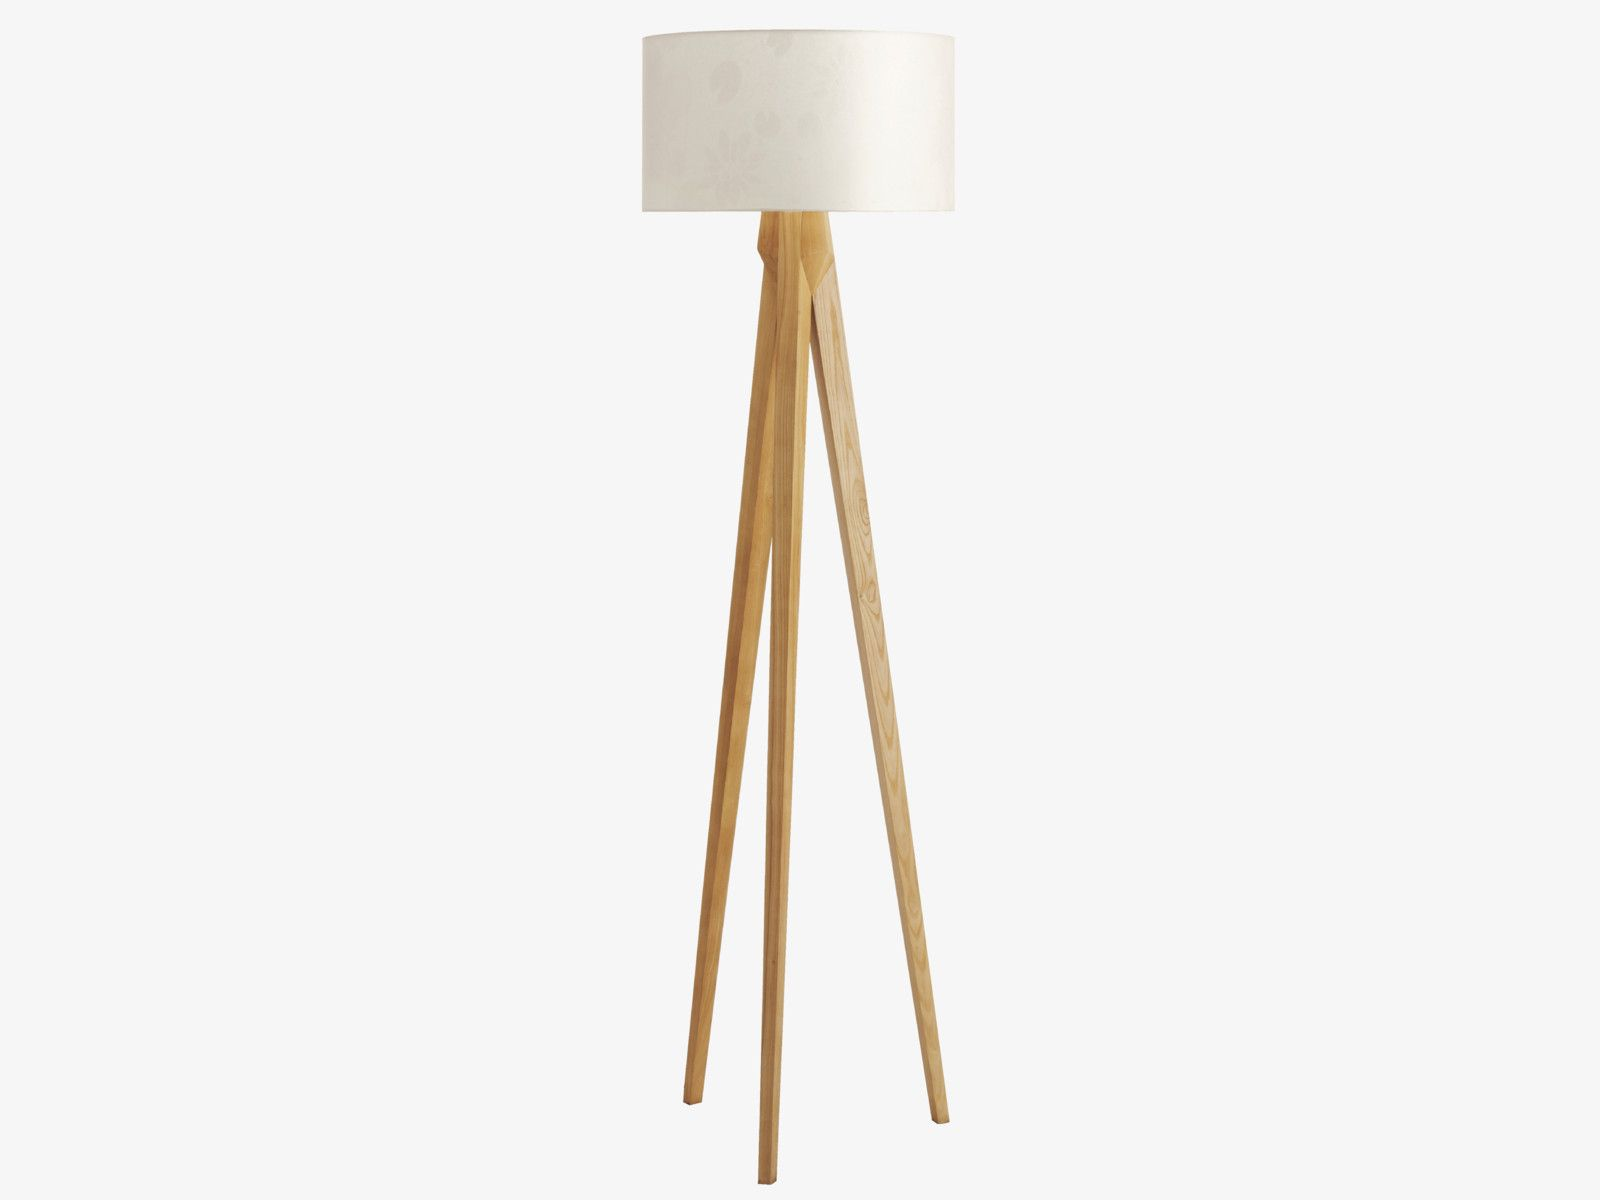 Tripod base ash wooden tripod floor lamp tripod lamp bases and tripod base ash wooden tripod floor lamp aloadofball Choice Image